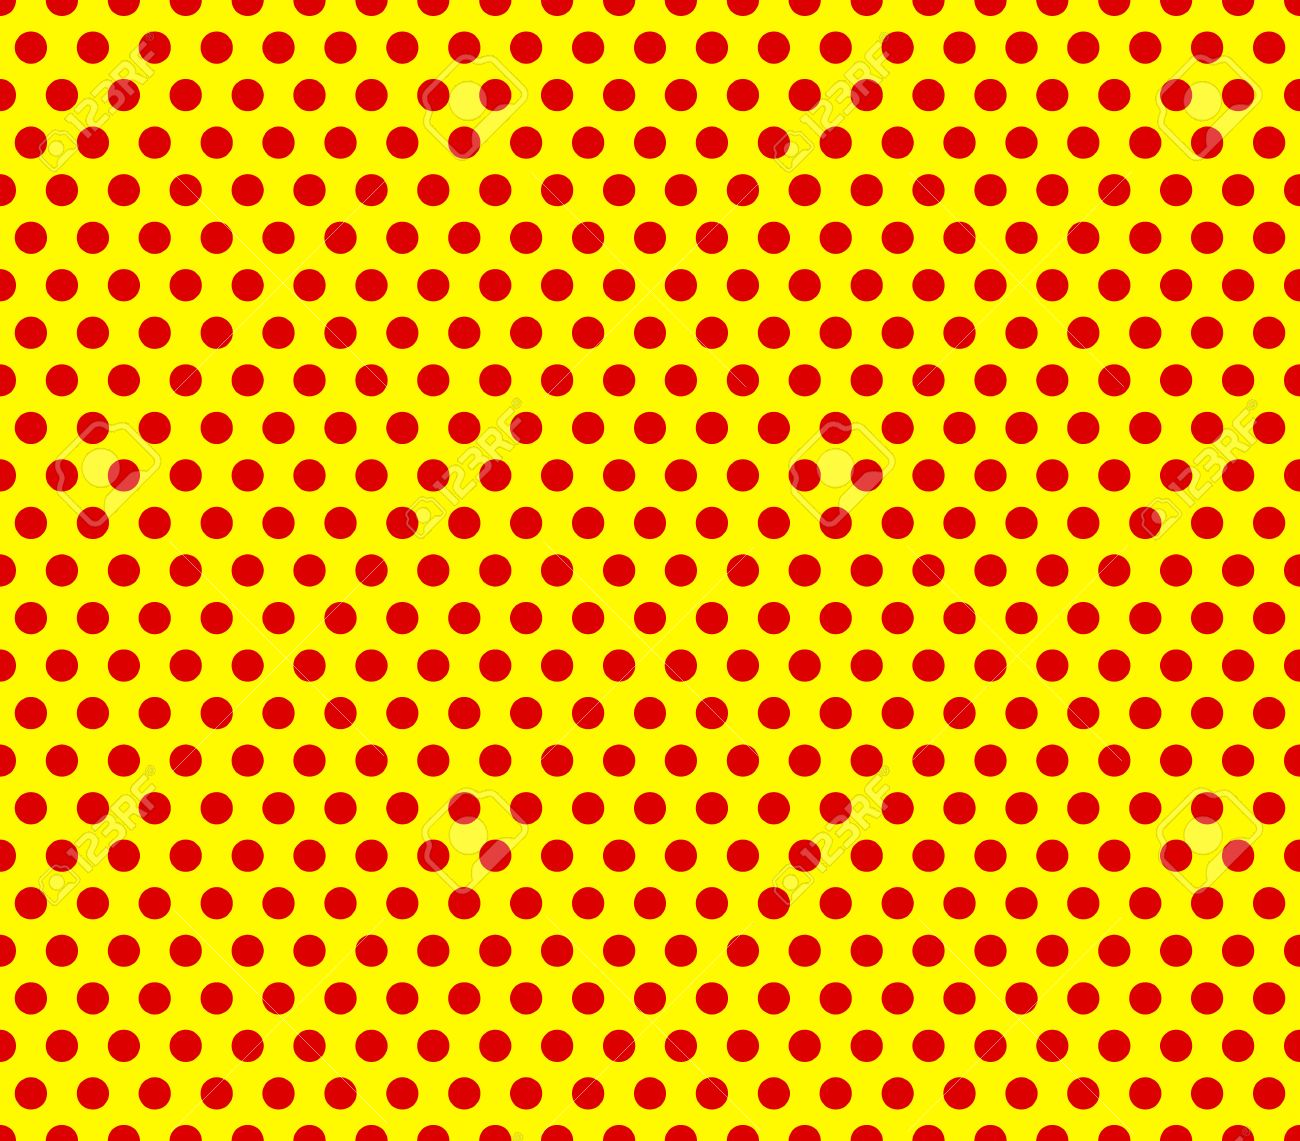 pop art style repeatable red dots on yellow background royalty free rh 123rf com pop art background psd pop art backgrounds free